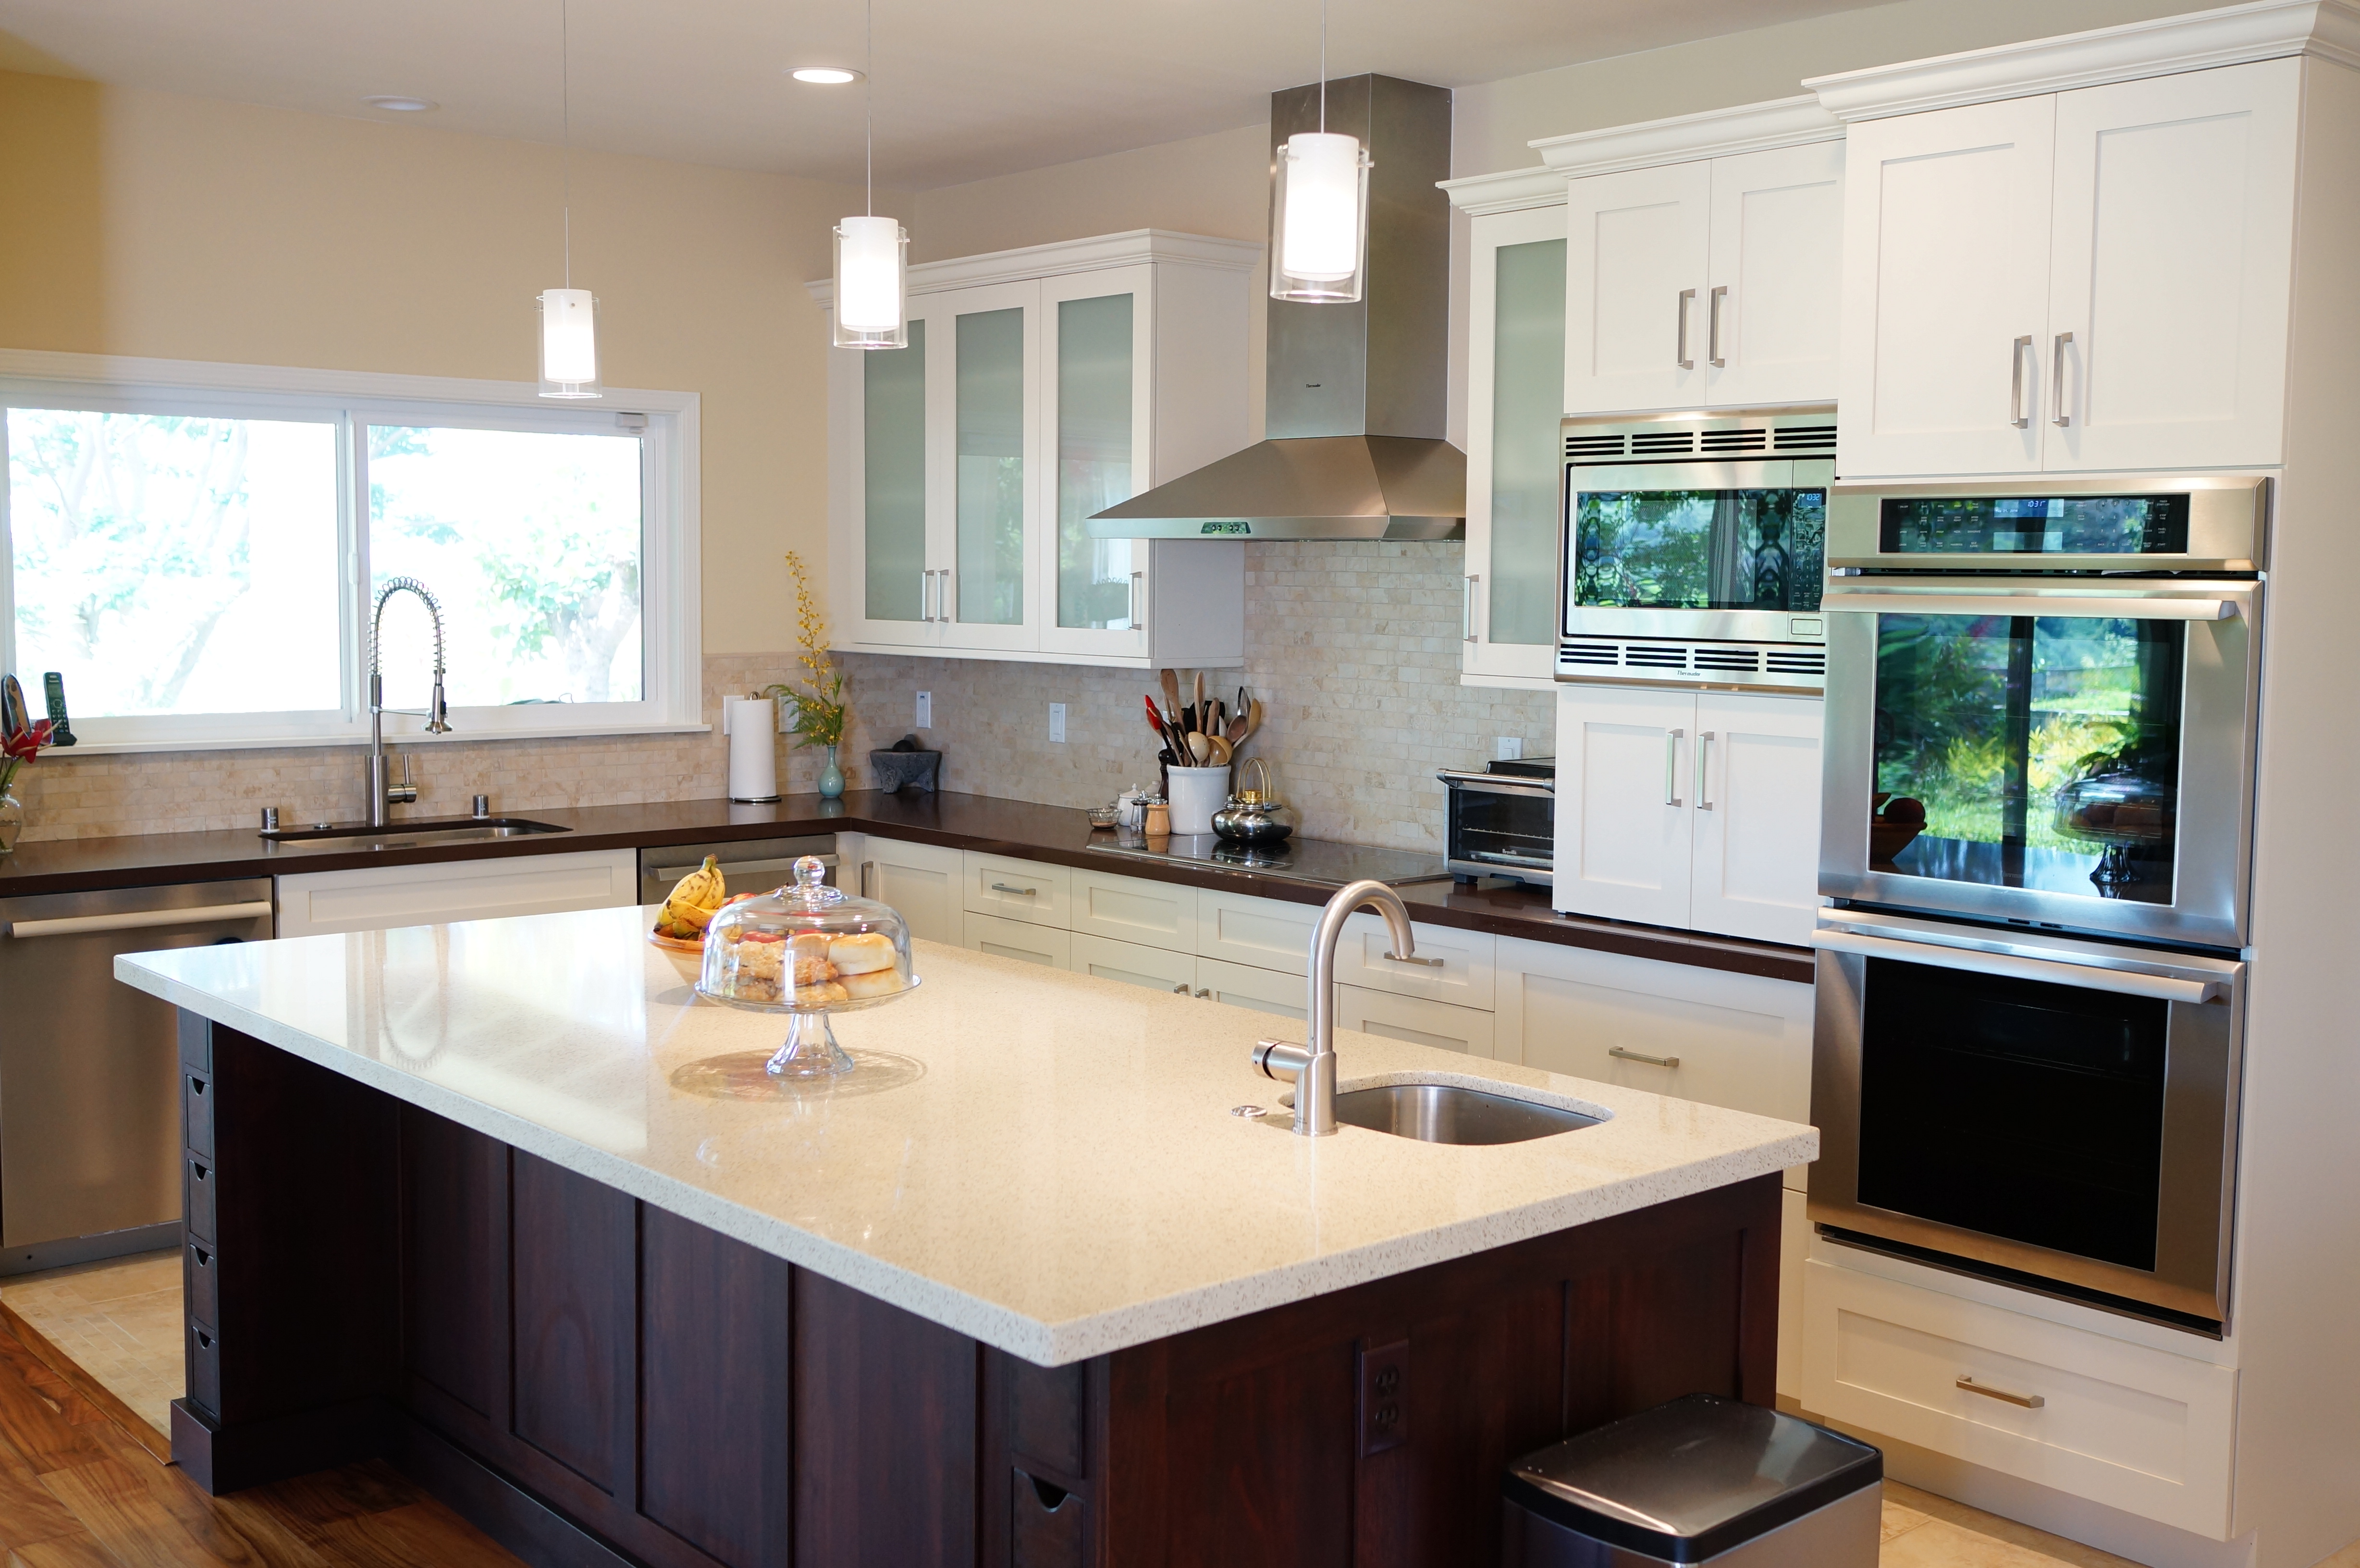 Kitchen Design Layout Images Five Basic Kitchen Layouts Homeworks Hawaii